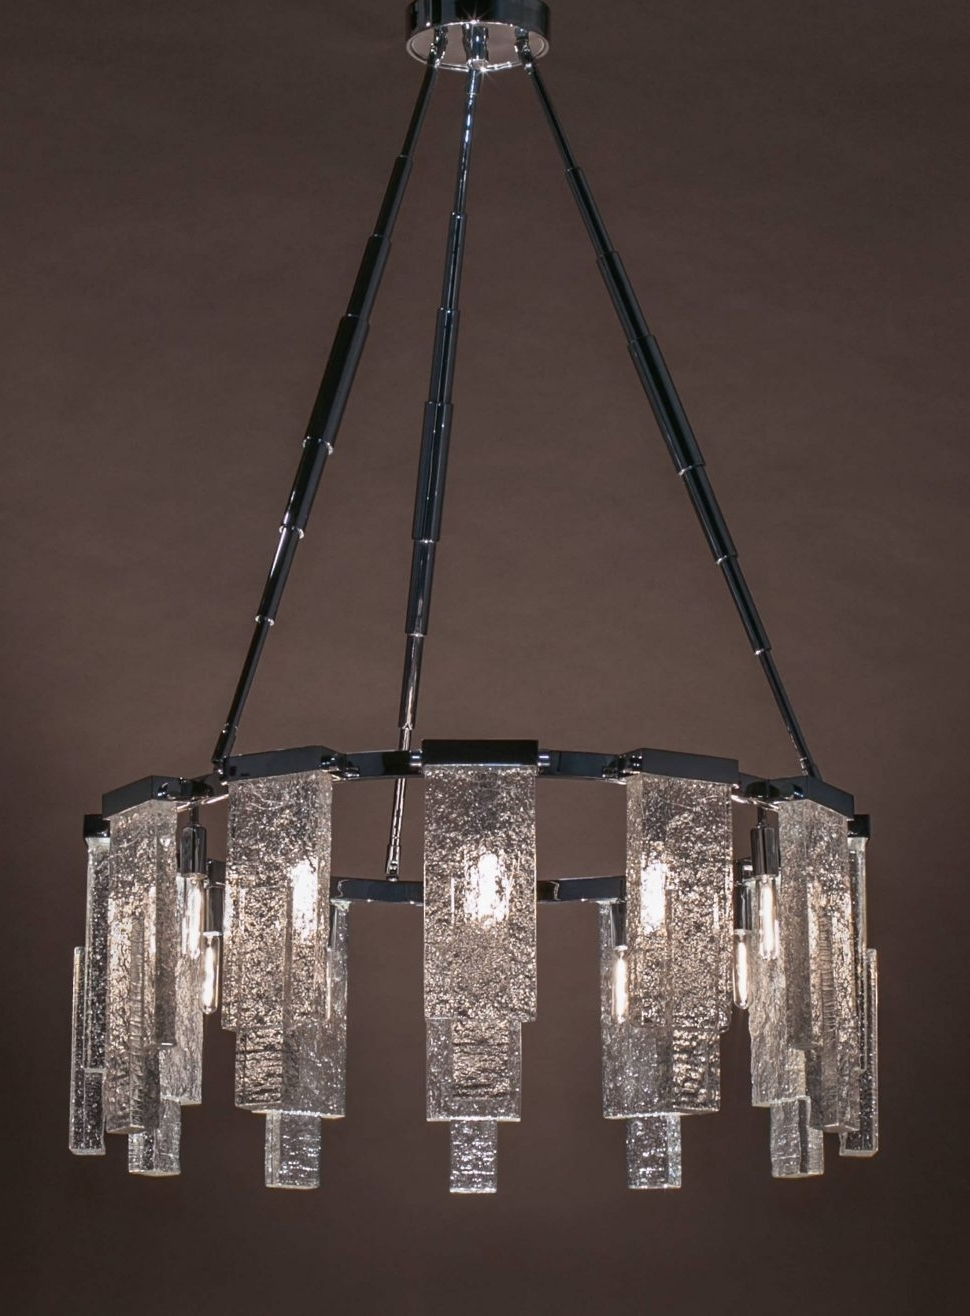 2019 Chandelier : Large Chandeliers Cool Chandeliers Pendant Ceiling Regarding Modern Large Chandelier (View 2 of 20)